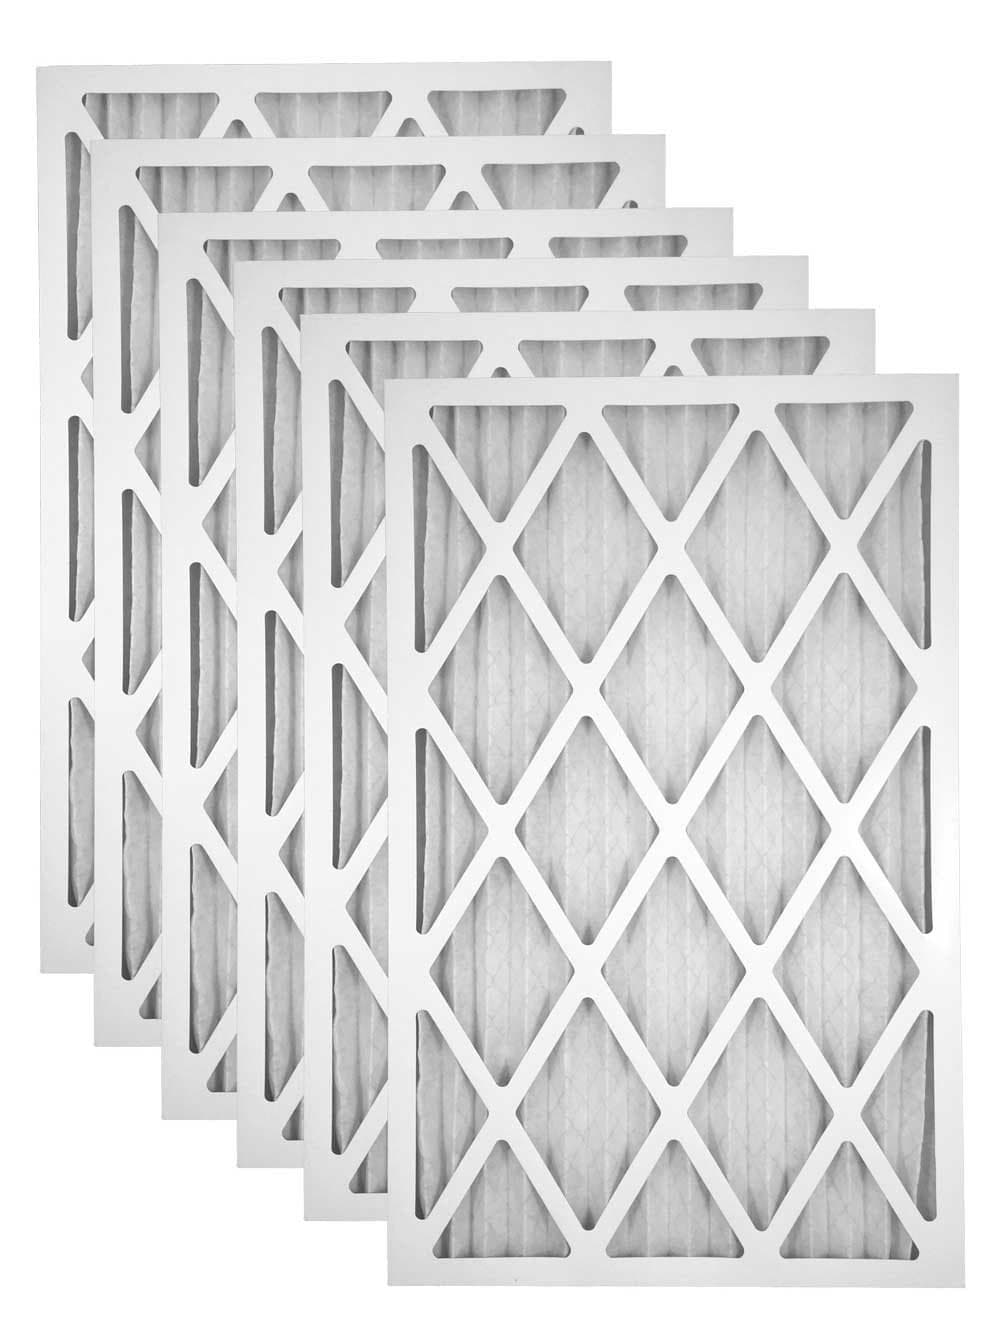 Atomic 12x24x2 MERV 11 Pleated AC Furnace Filter - 6 Pack